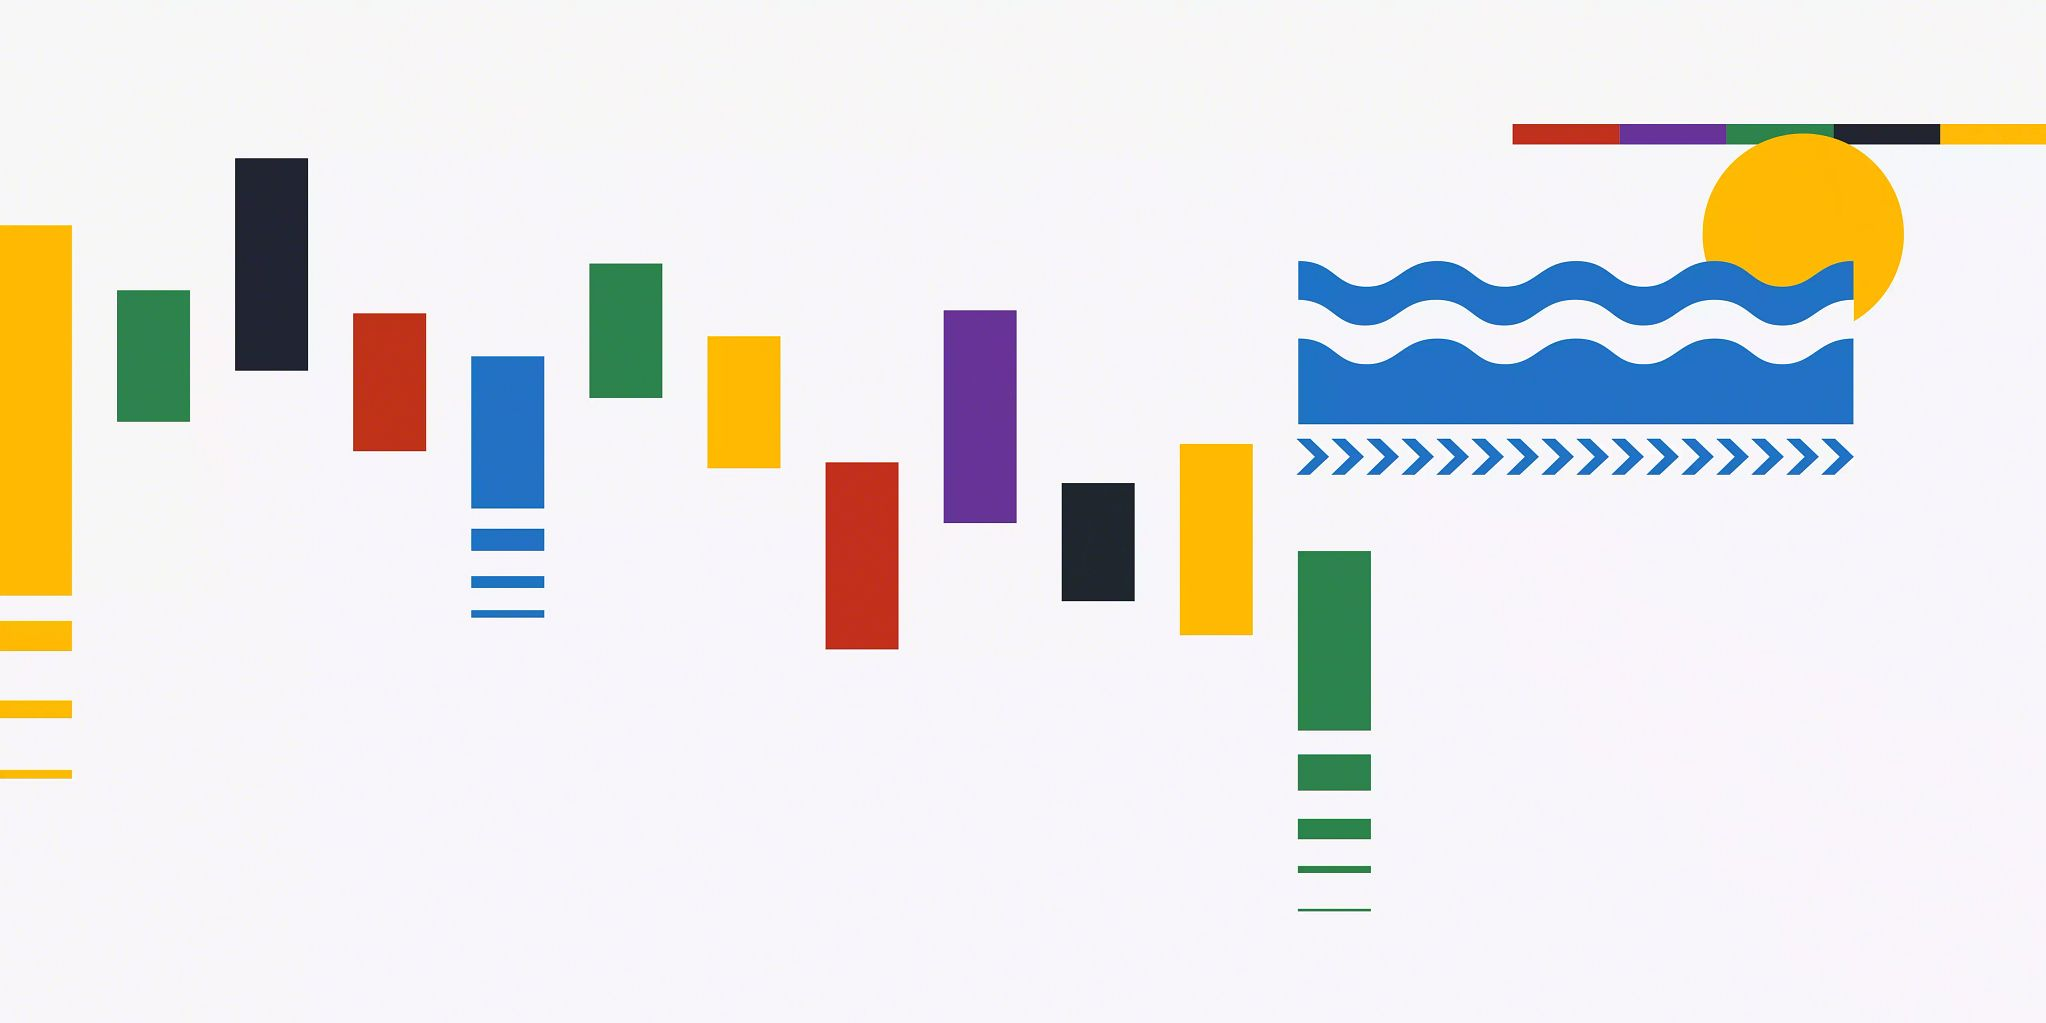 Illustration with many individual graphics including a row of lines varying in height, color, and vertical placement within the illustration. These lines go from left to right and end about 2/3rds of the way to the right. On the top right is a smaller blue graphic that looks like waves and an solid yellow circle behind it that looks like a sun. Above the yellow circle is a small straight, horizontal line that is comprised of five colors taking up an equal percentage of the line.